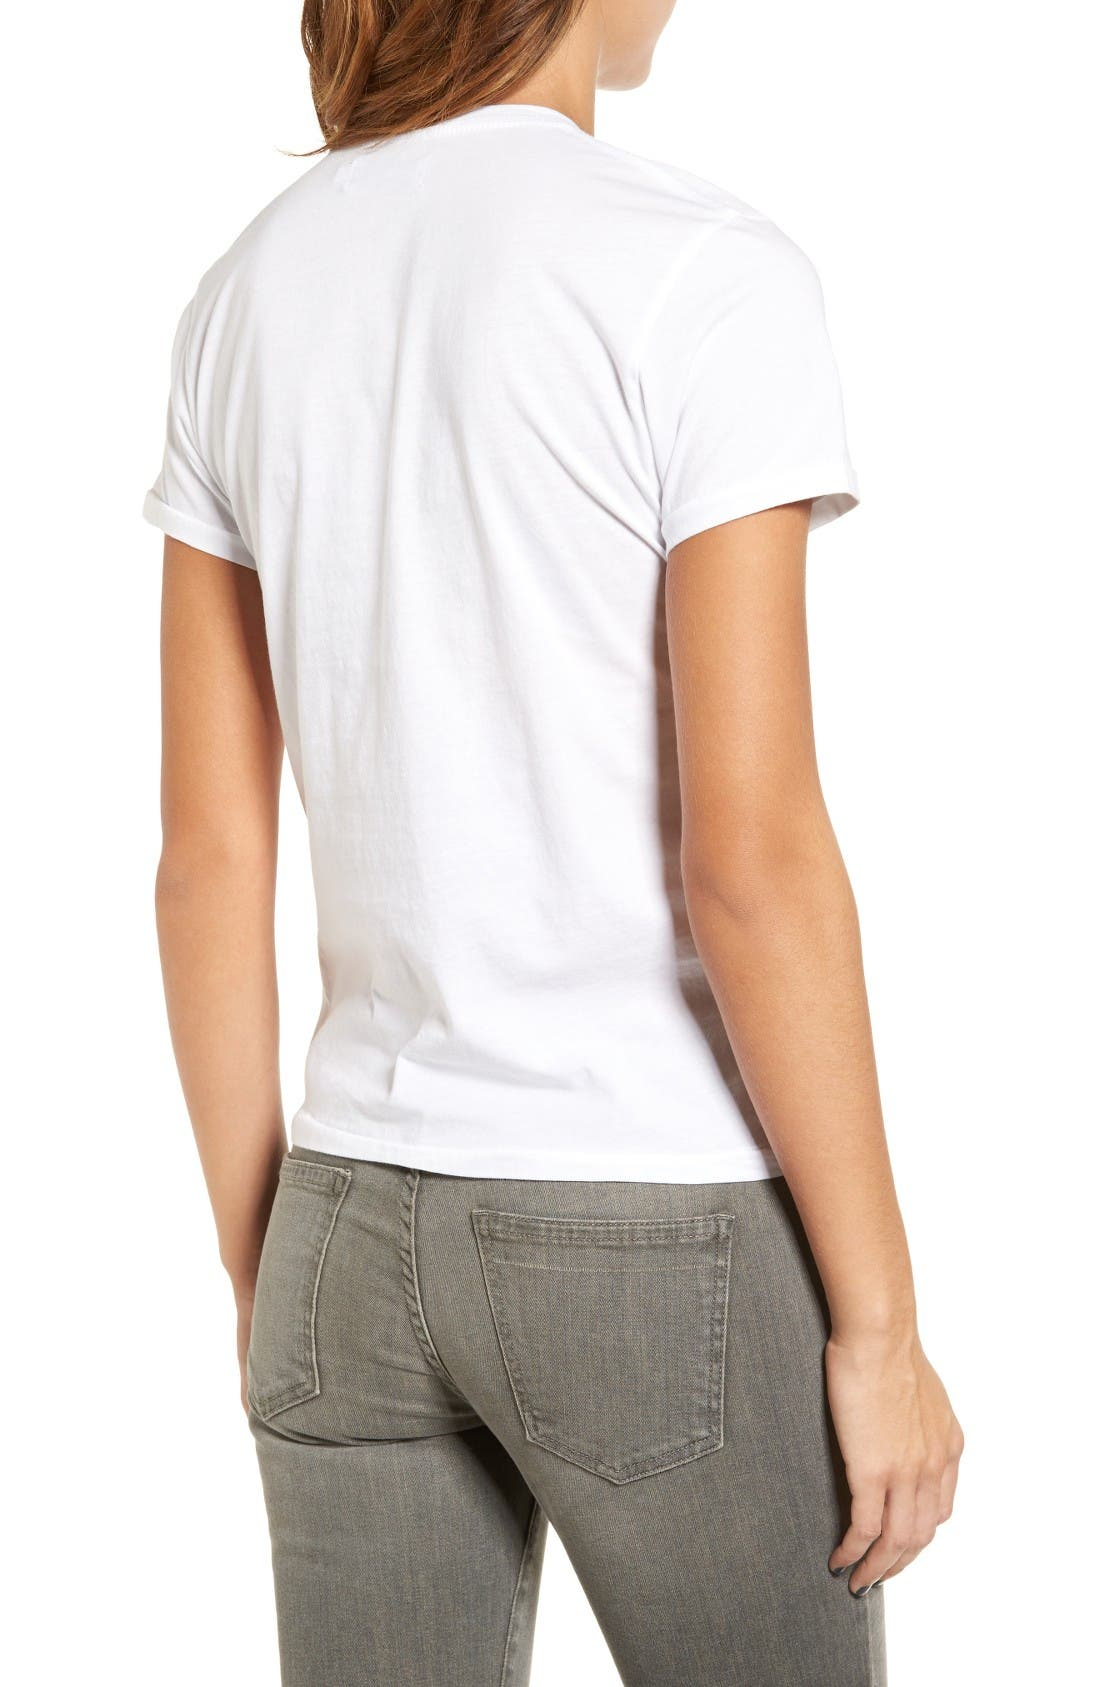 Alternate Image 2  - Sincerely Jules All Day Off Duty Cotton Tee